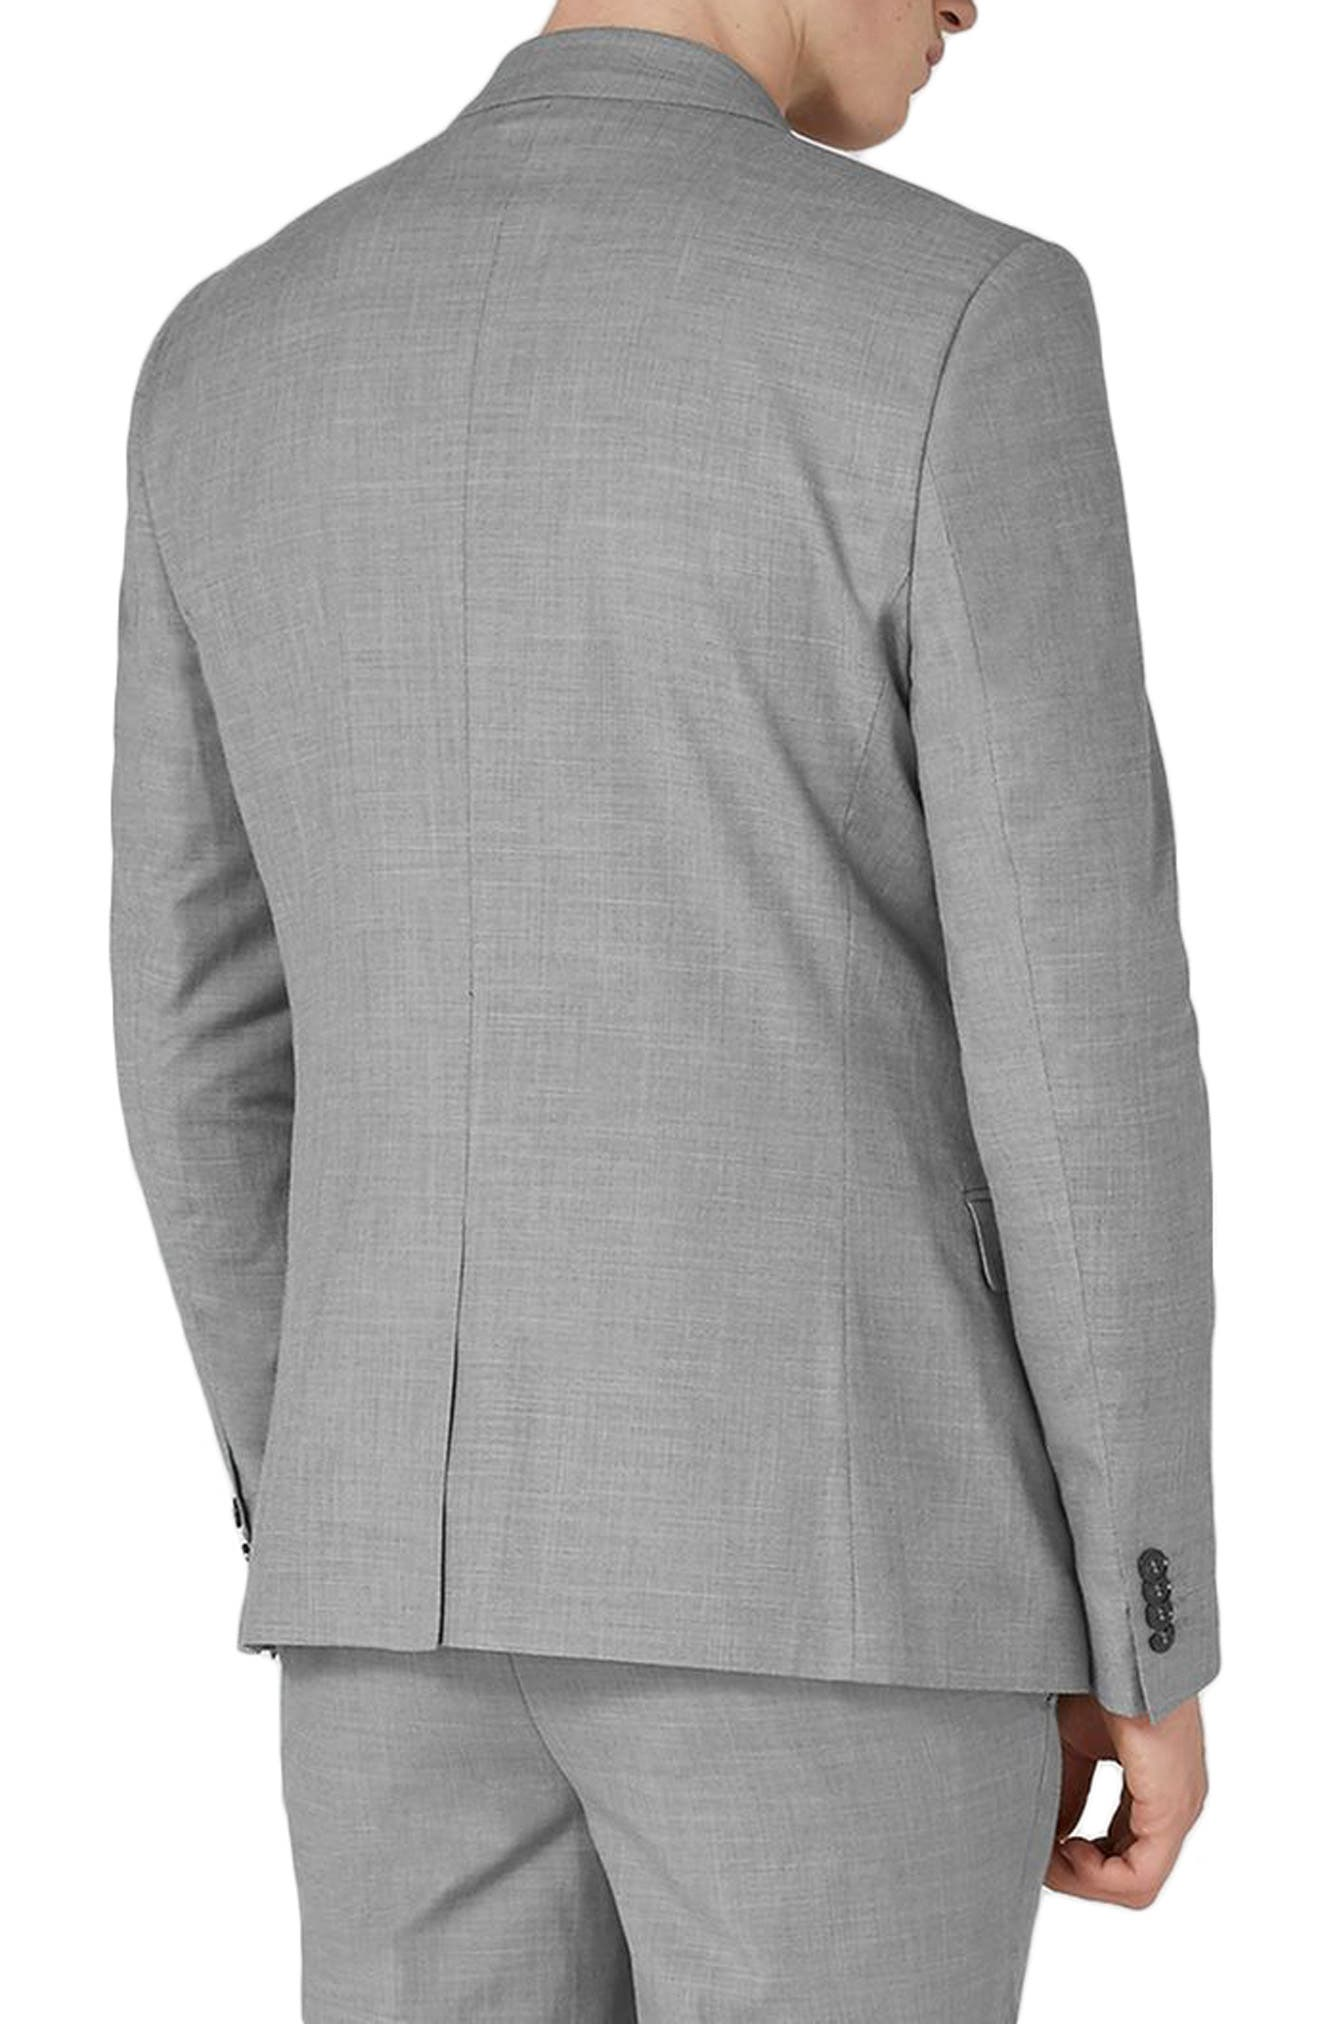 Skinny Fit Suit Jacket,                             Alternate thumbnail 3, color,                             Grey